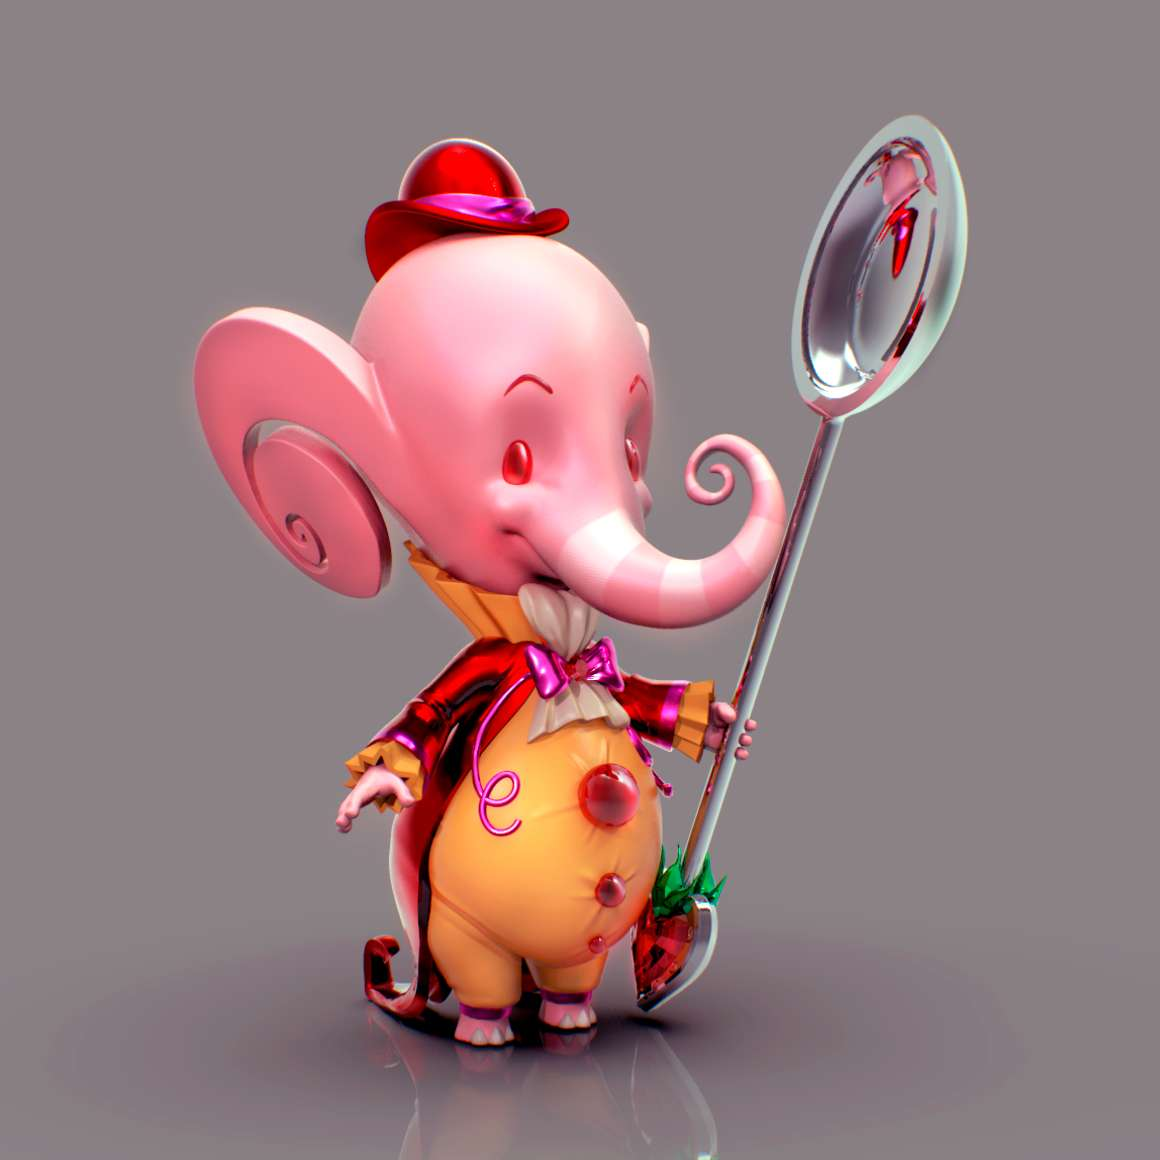 Pink Elephant - Adorable Pink Elephant and his love for silver spoons. - The best files for 3D printing in the world. Stl models divided into parts to facilitate 3D printing. All kinds of characters, decoration, cosplay, prosthetics, pieces. Quality in 3D printing. Affordable 3D models. Low cost. Collective purchases of 3D files.